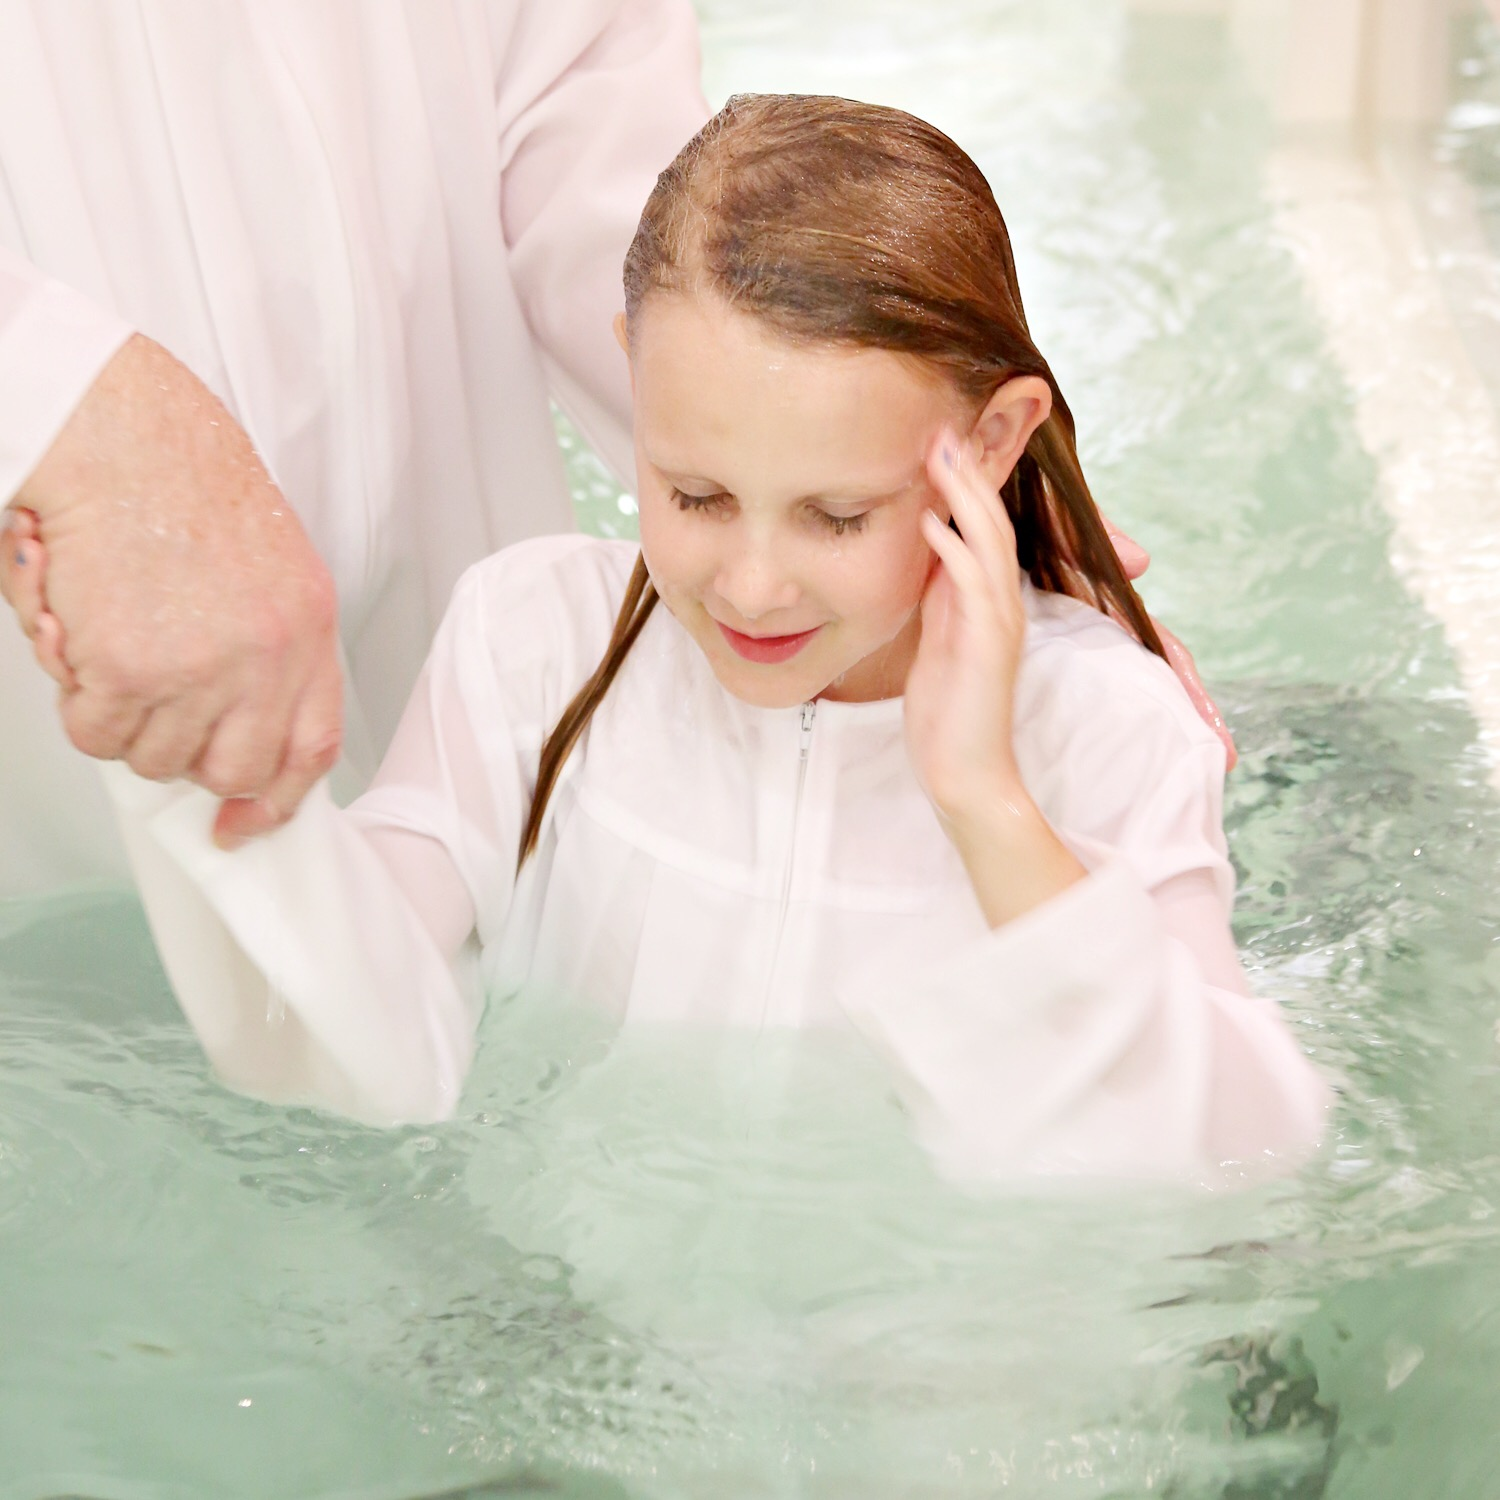 When Your Child Gets Baptized | leslieannjones.com